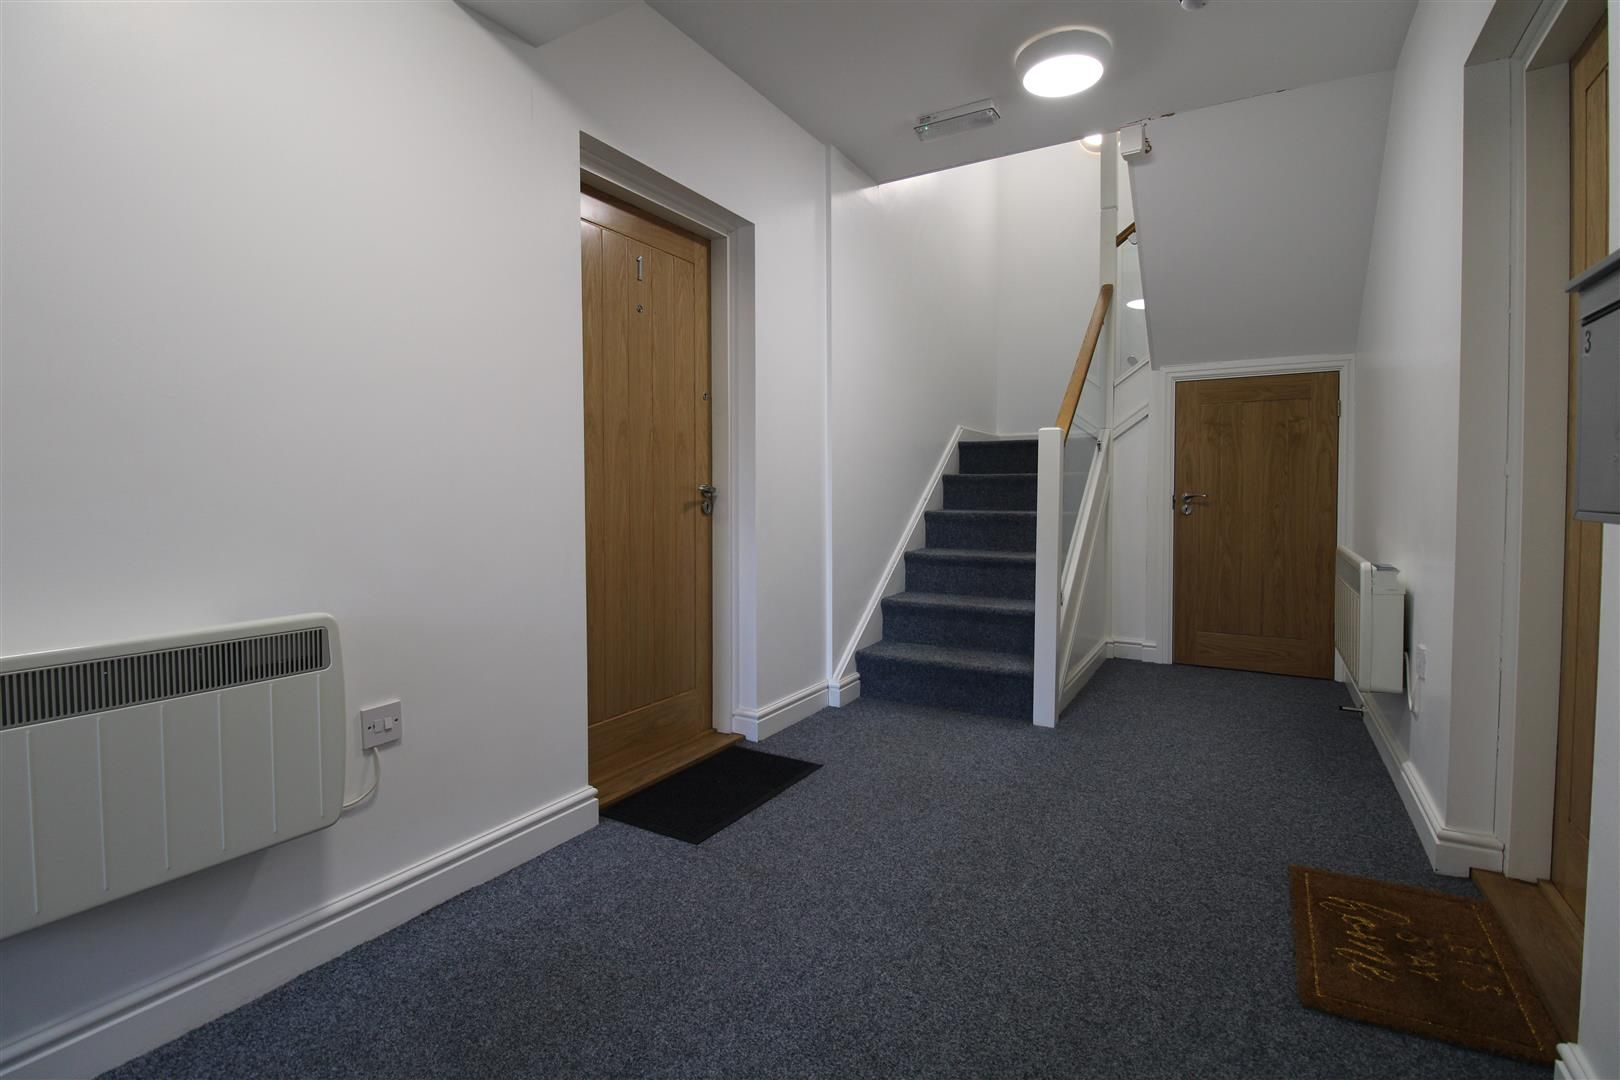 2 bed apartment for sale in Swindon 16